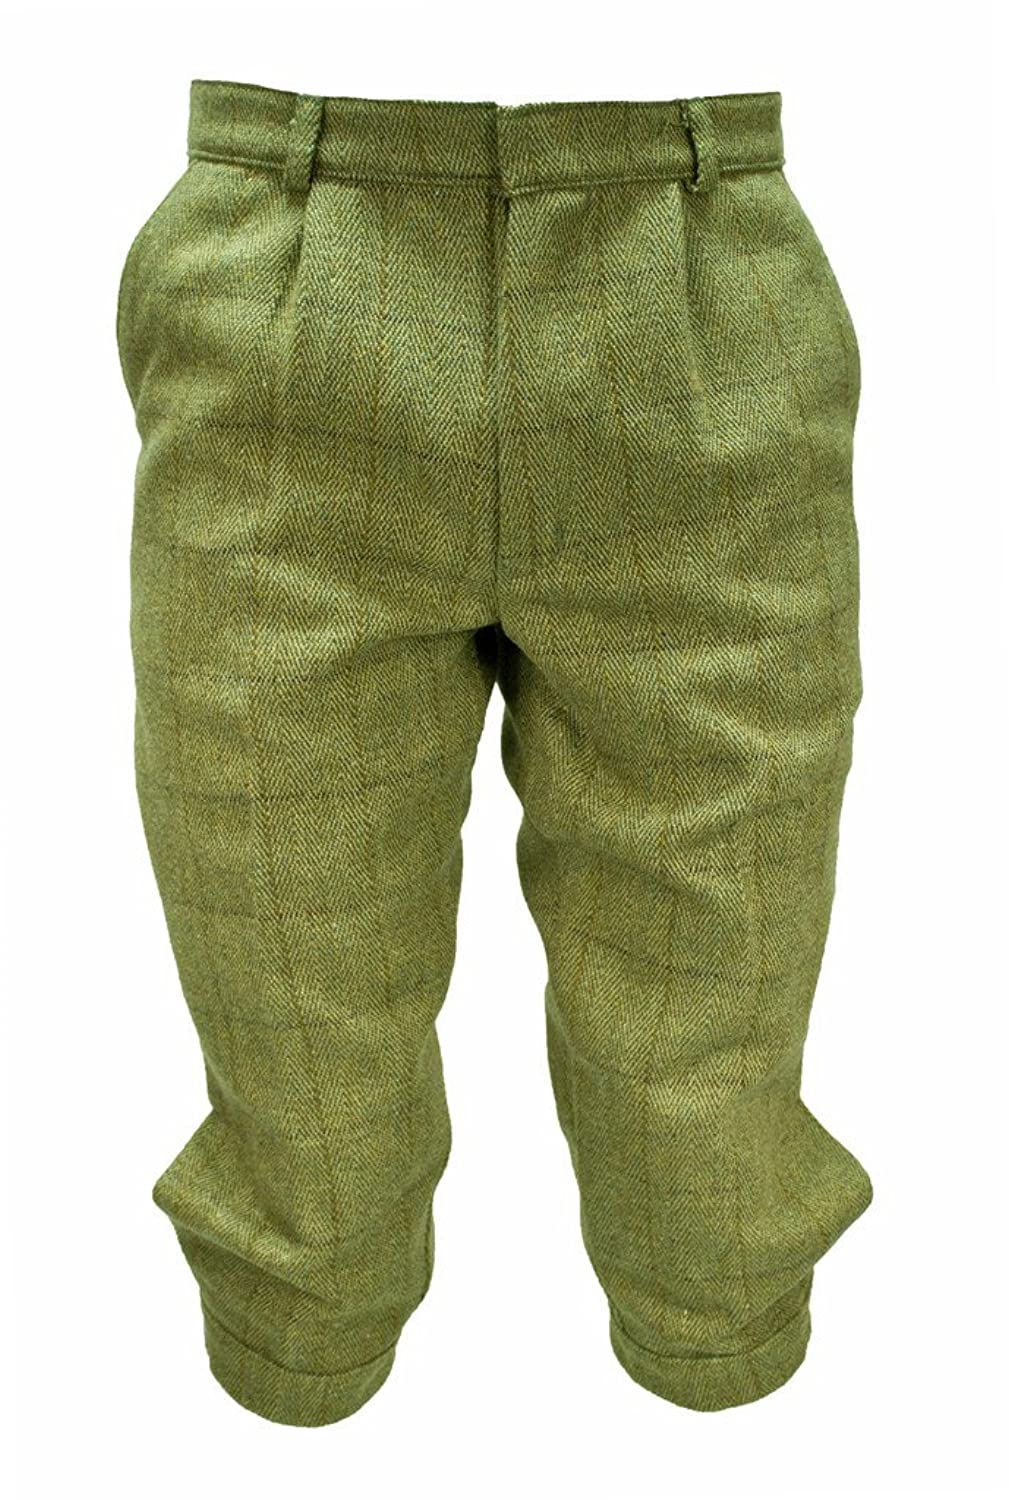 1920s Style Women's Pants, Trousers, Knickers, Tuxedo Tweed Breeks Trousers Pants Plus Fours by WWK / WorkWear King $54.95 AT vintagedancer.com